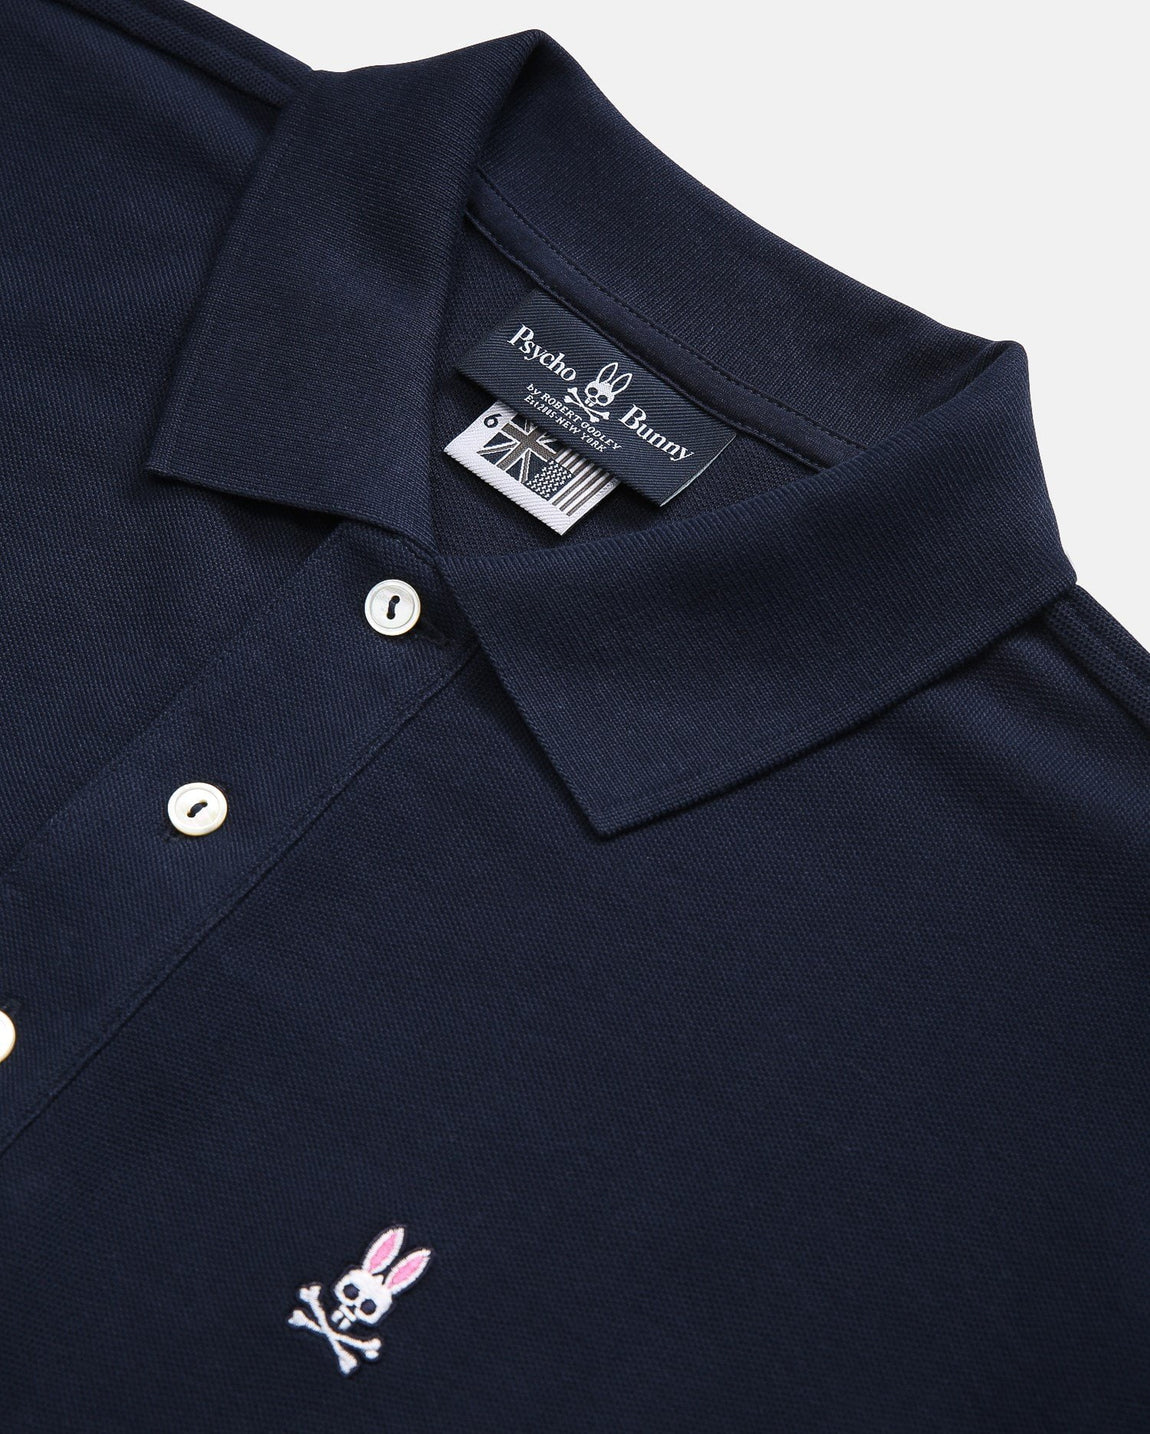 LONG SLEEVE POLO - B6M658ARPC - NAVY (NVY)